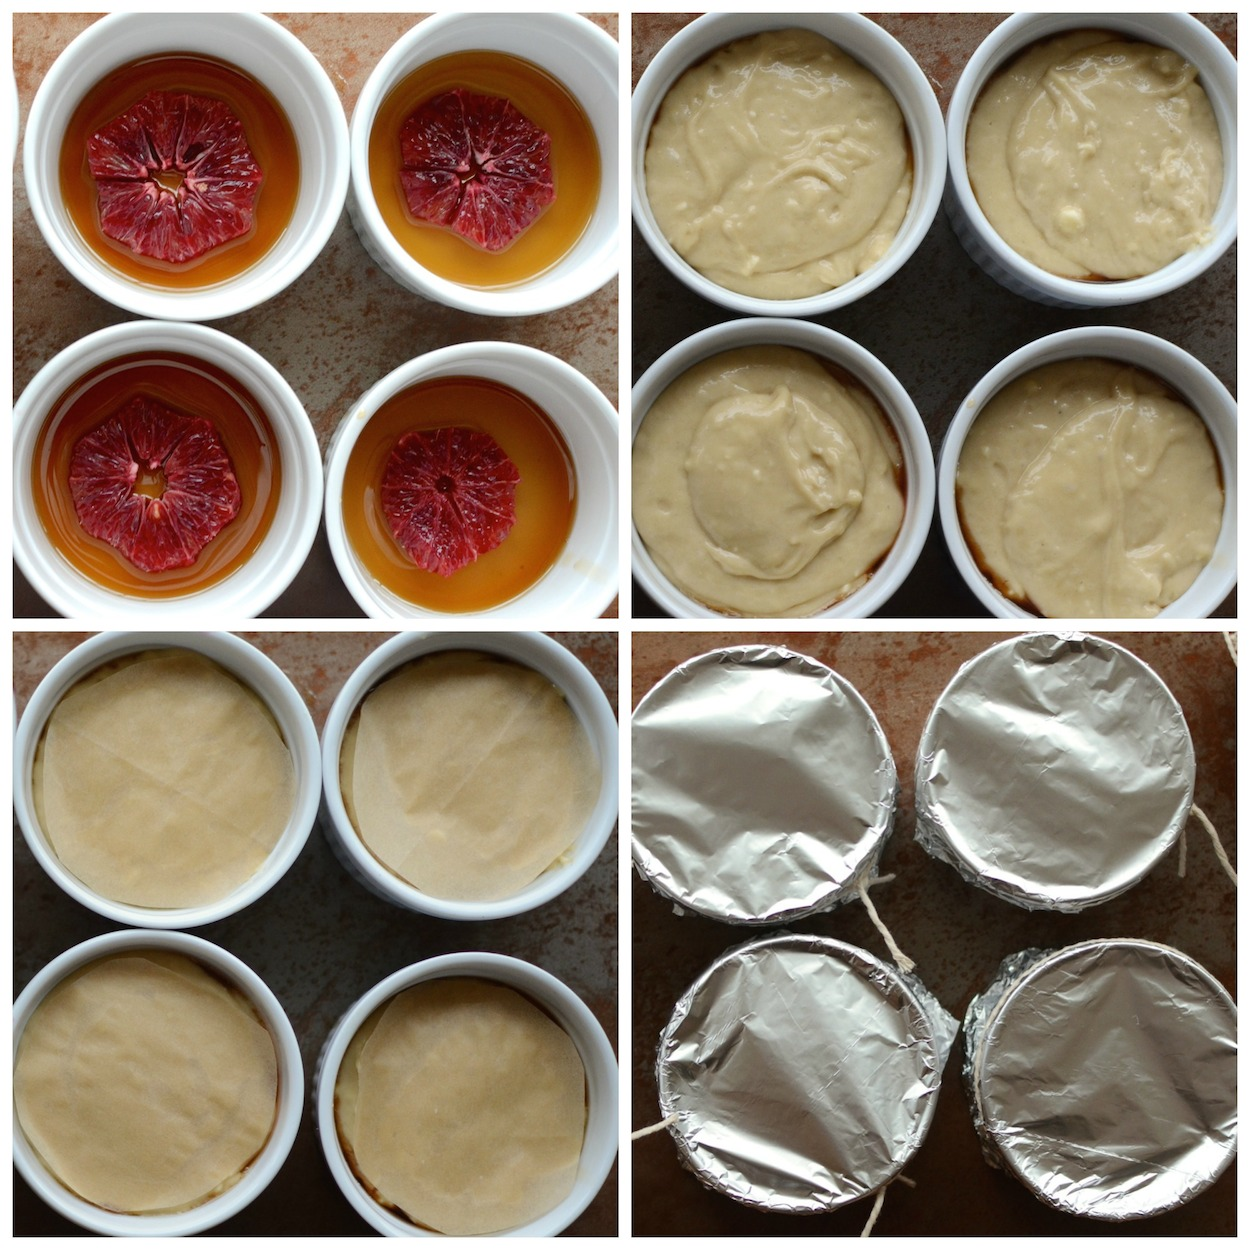 Steamed puddings in ramekins collage